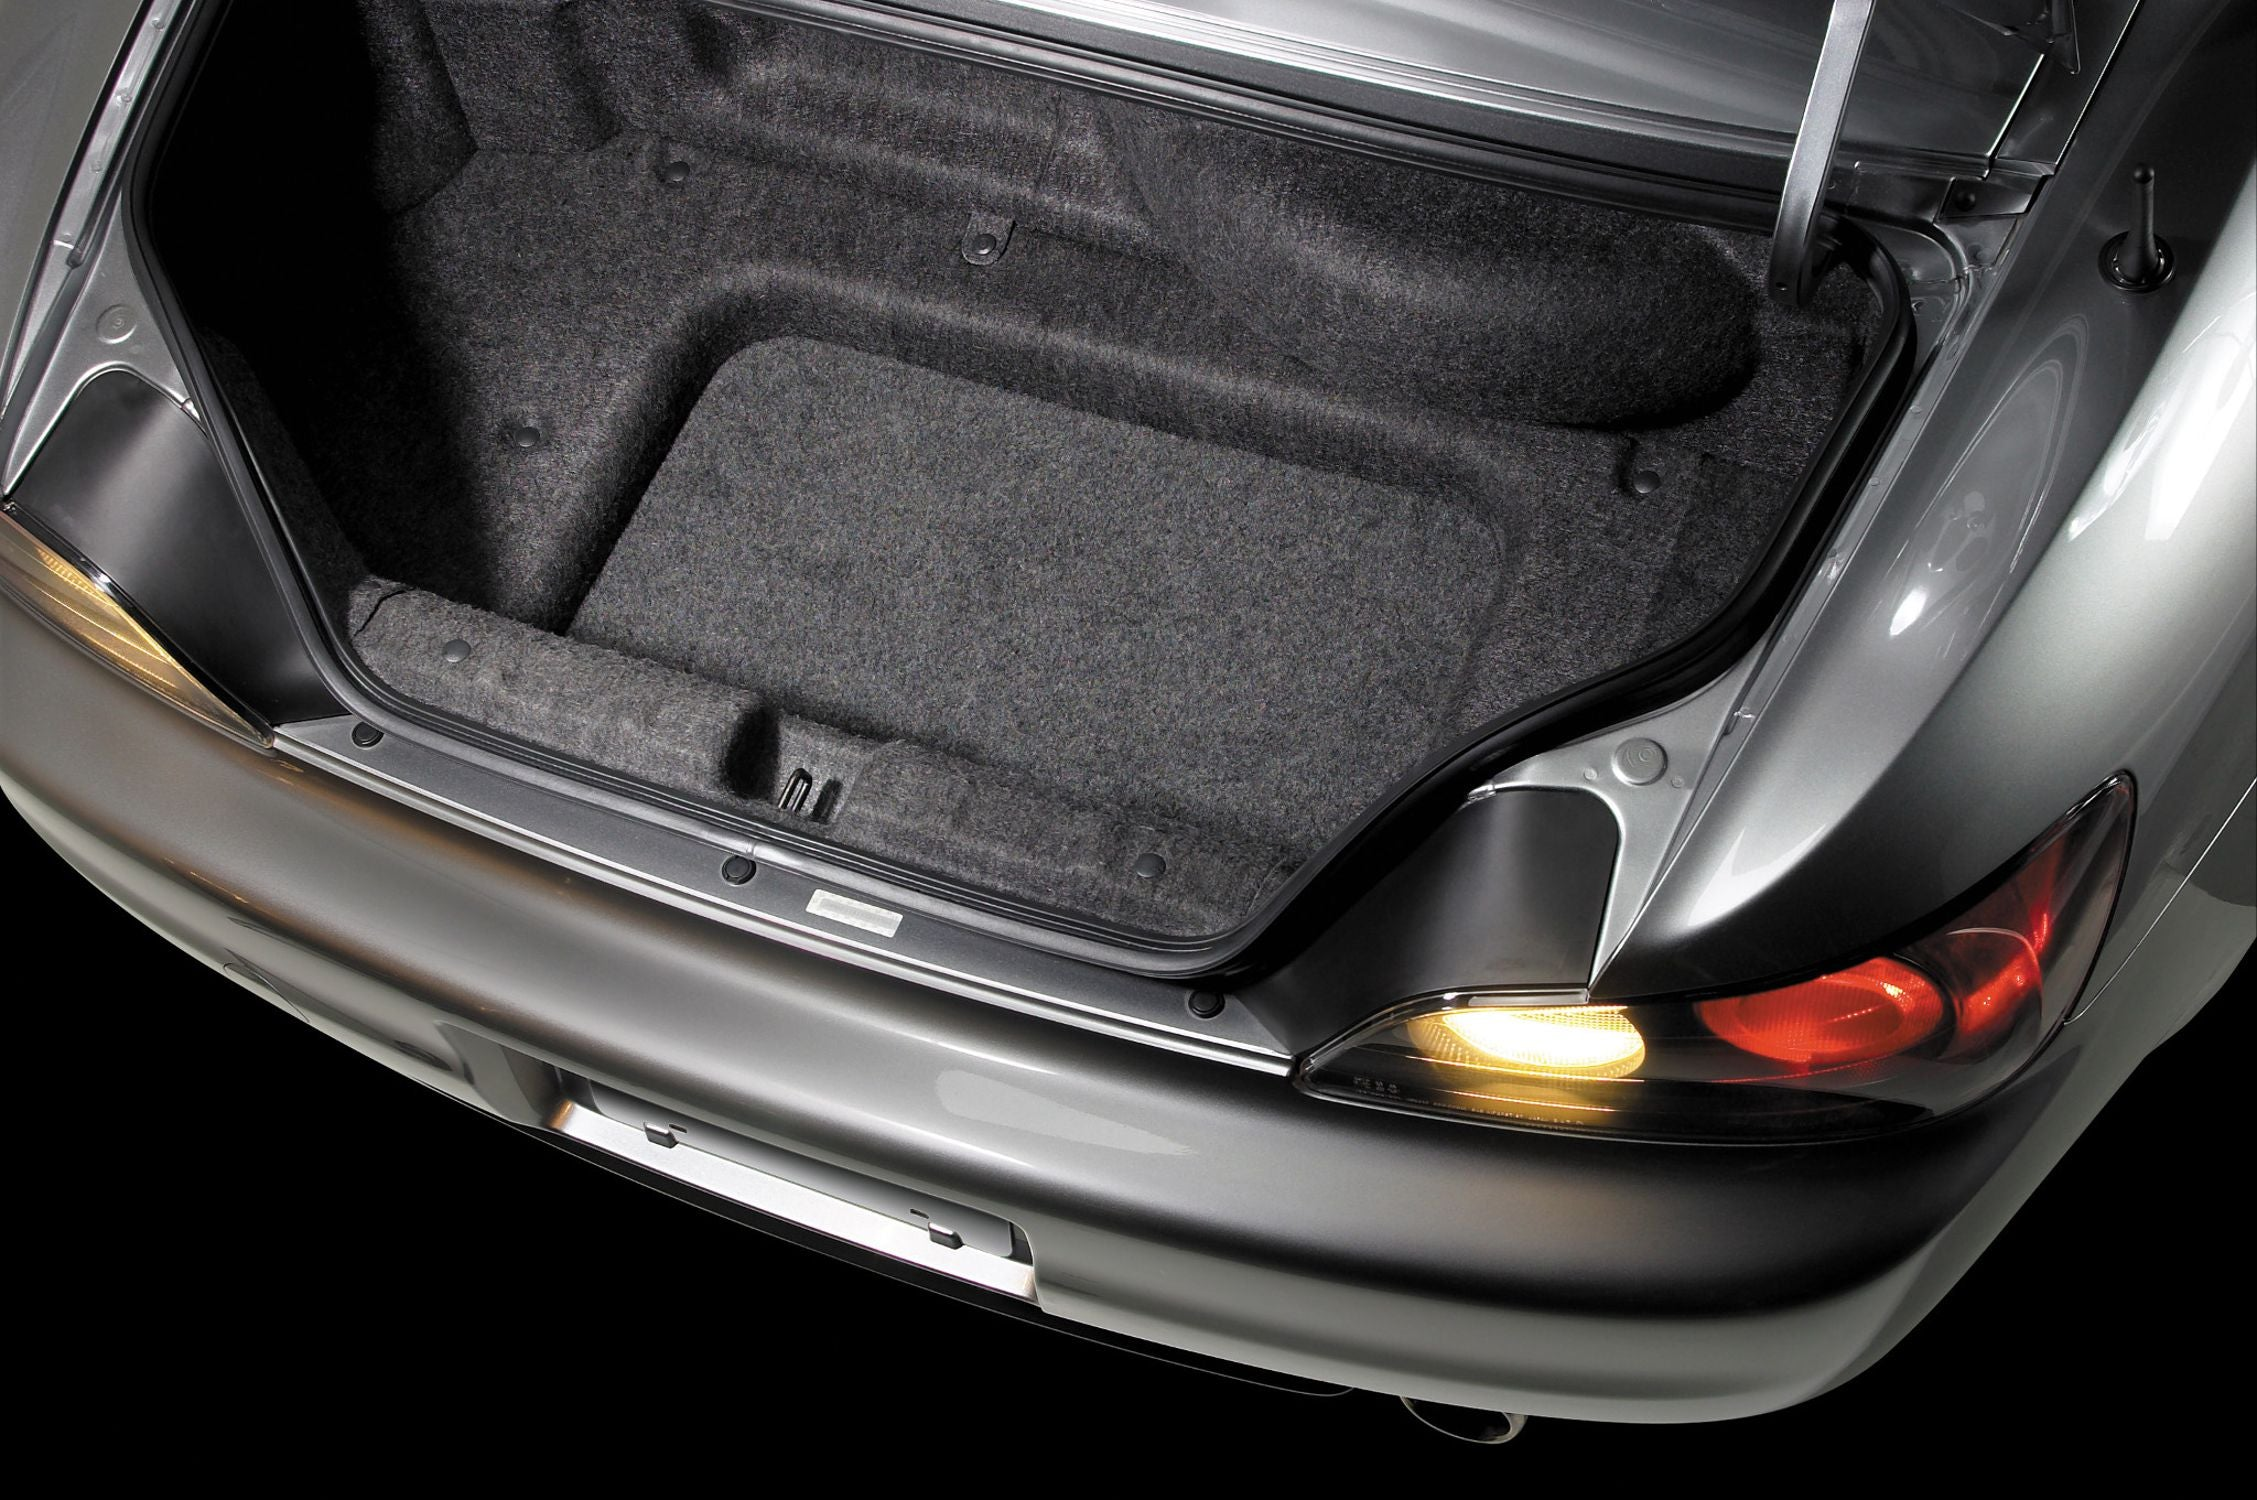 SB-H-S2000-10W3v3 Stealthbox Installed in Vehicle